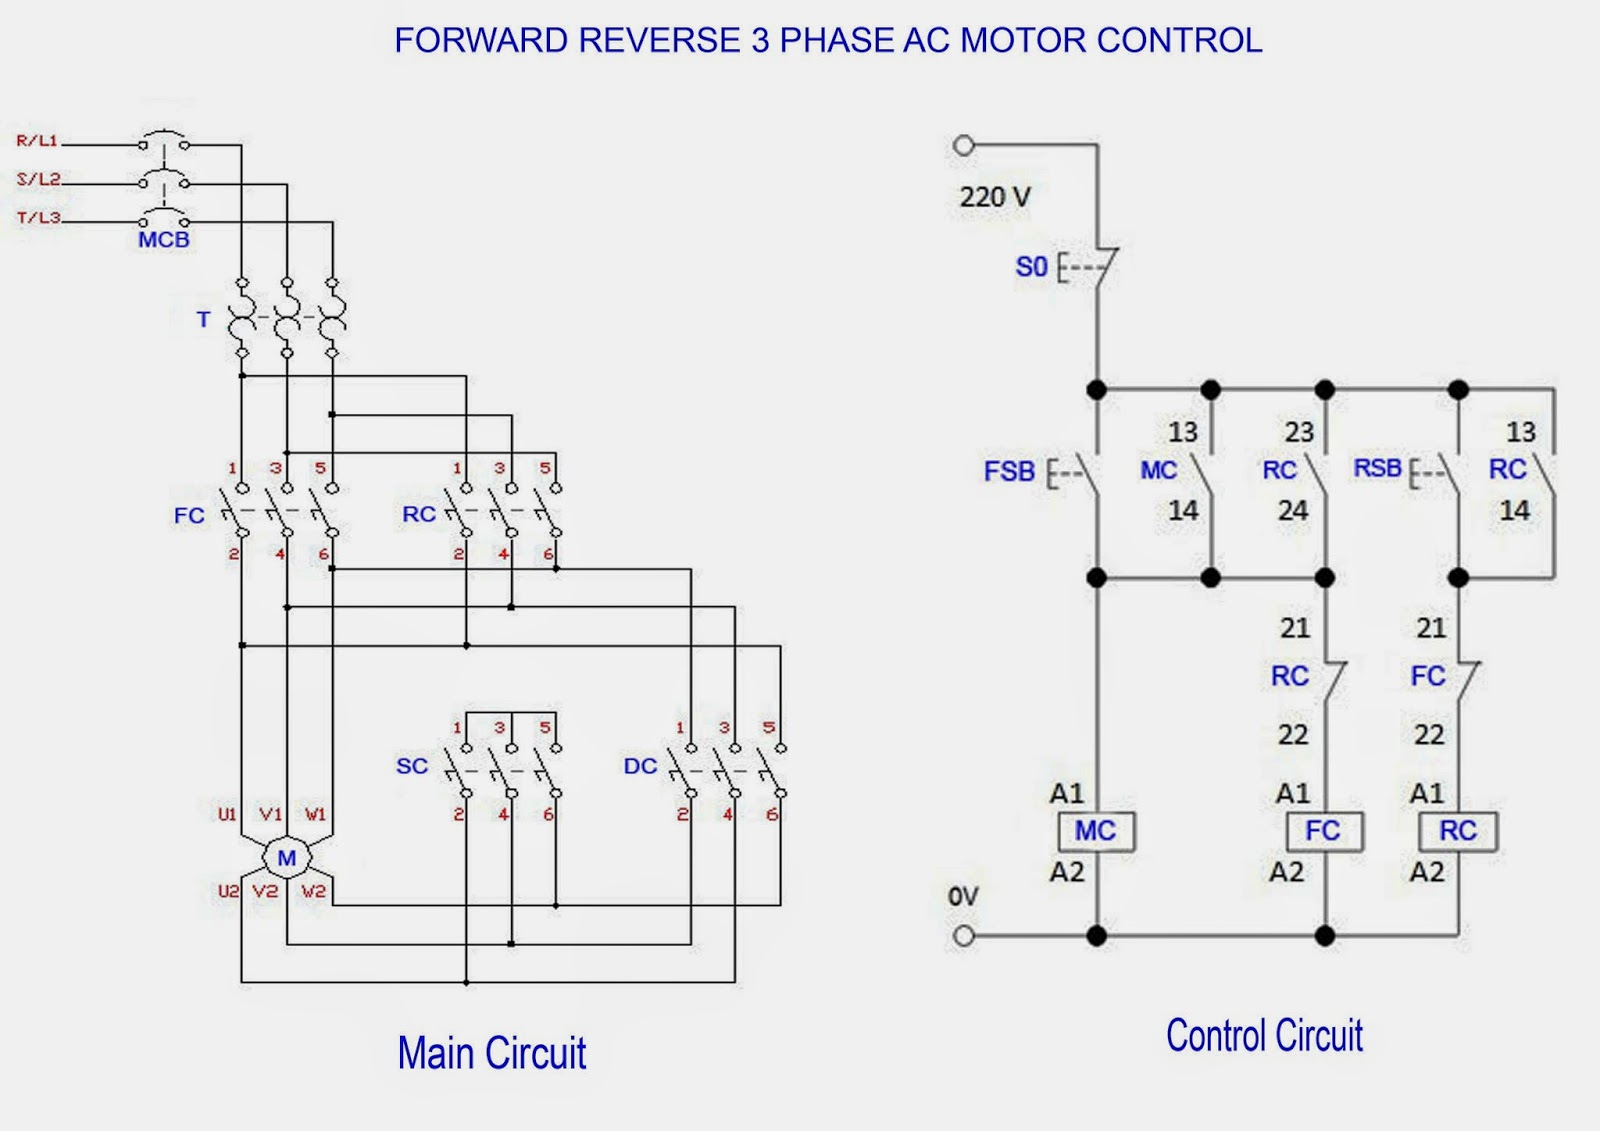 forward reverse 3 phase ac motor control wiring diagram electrical rh windingdiagrams blogspot com